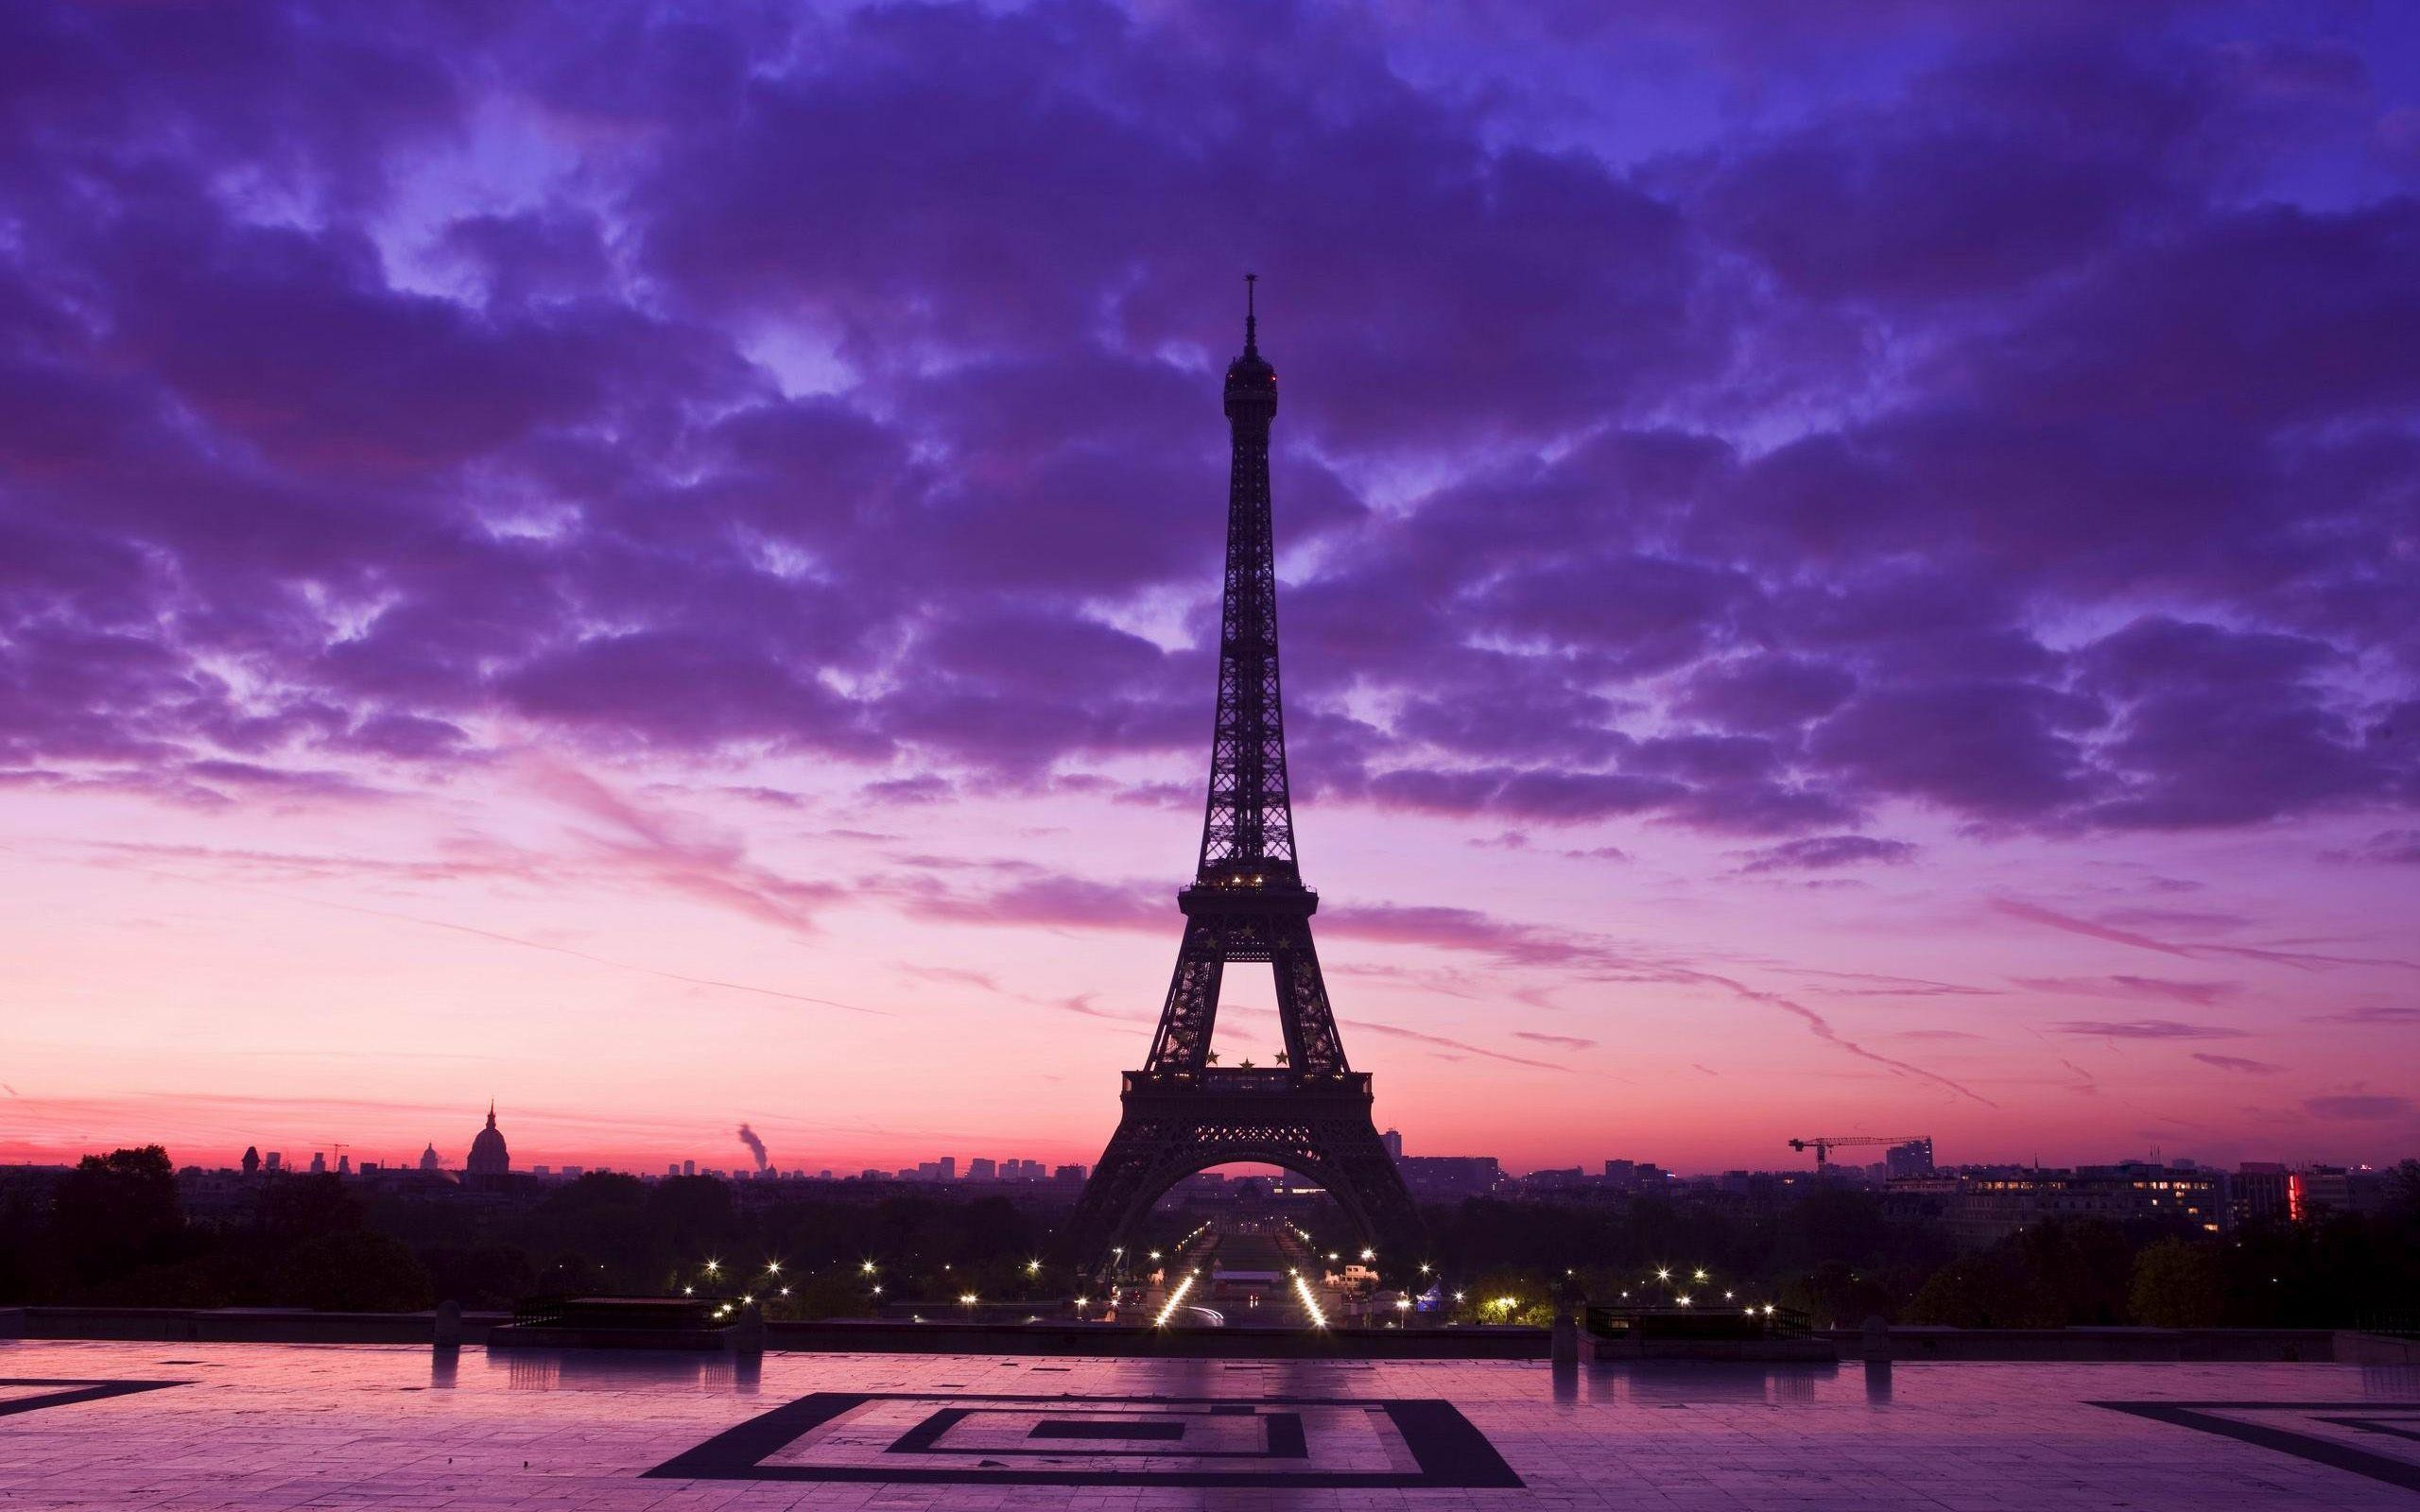 Czeshop Images Cute Eiffel Tower Wallpaper Tumblr